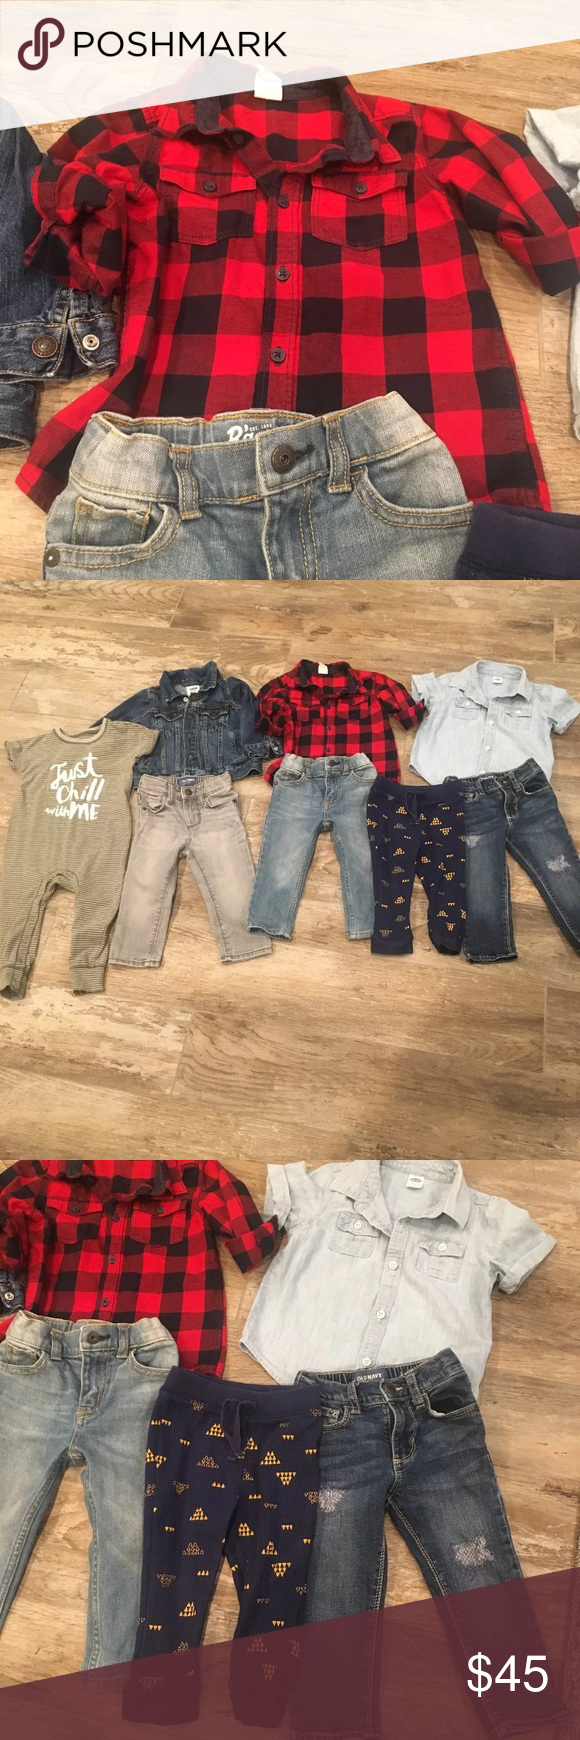 c26f10e489f8 Toddler Boy Clothes Bundle 18-24 Months The cool toddlers fall/winter  starter pack